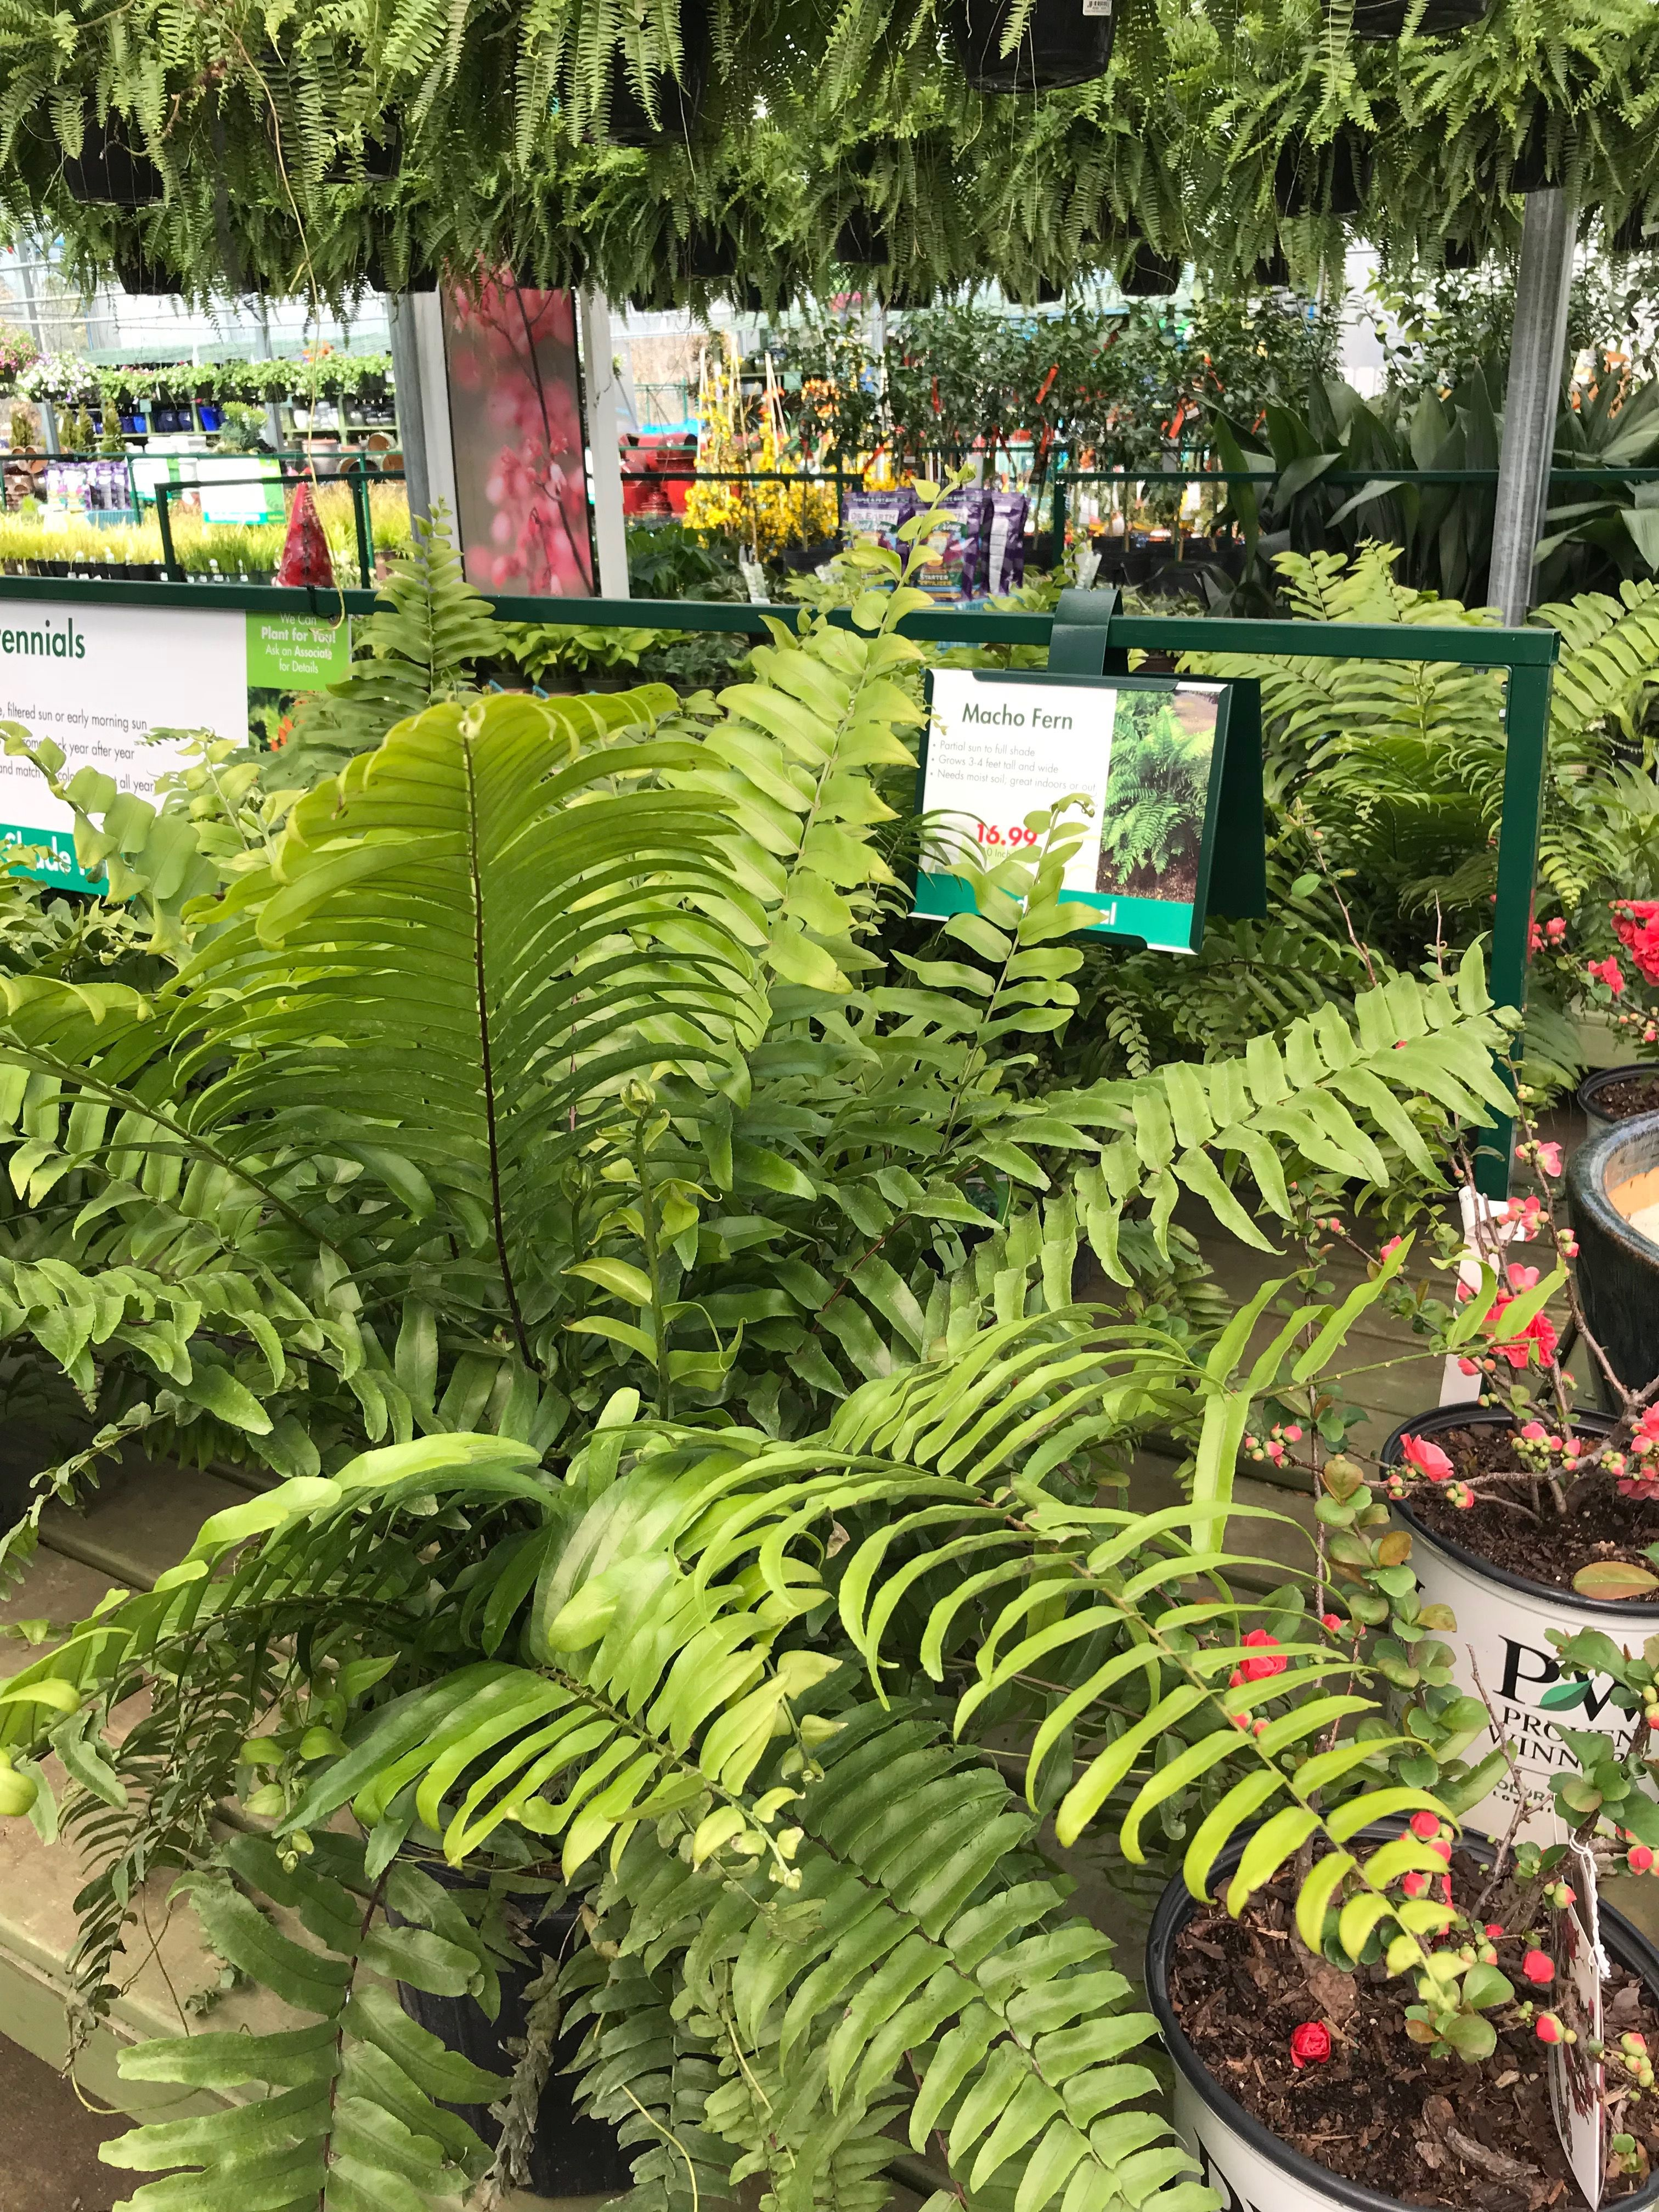 Macho Fern Pikes Nursery